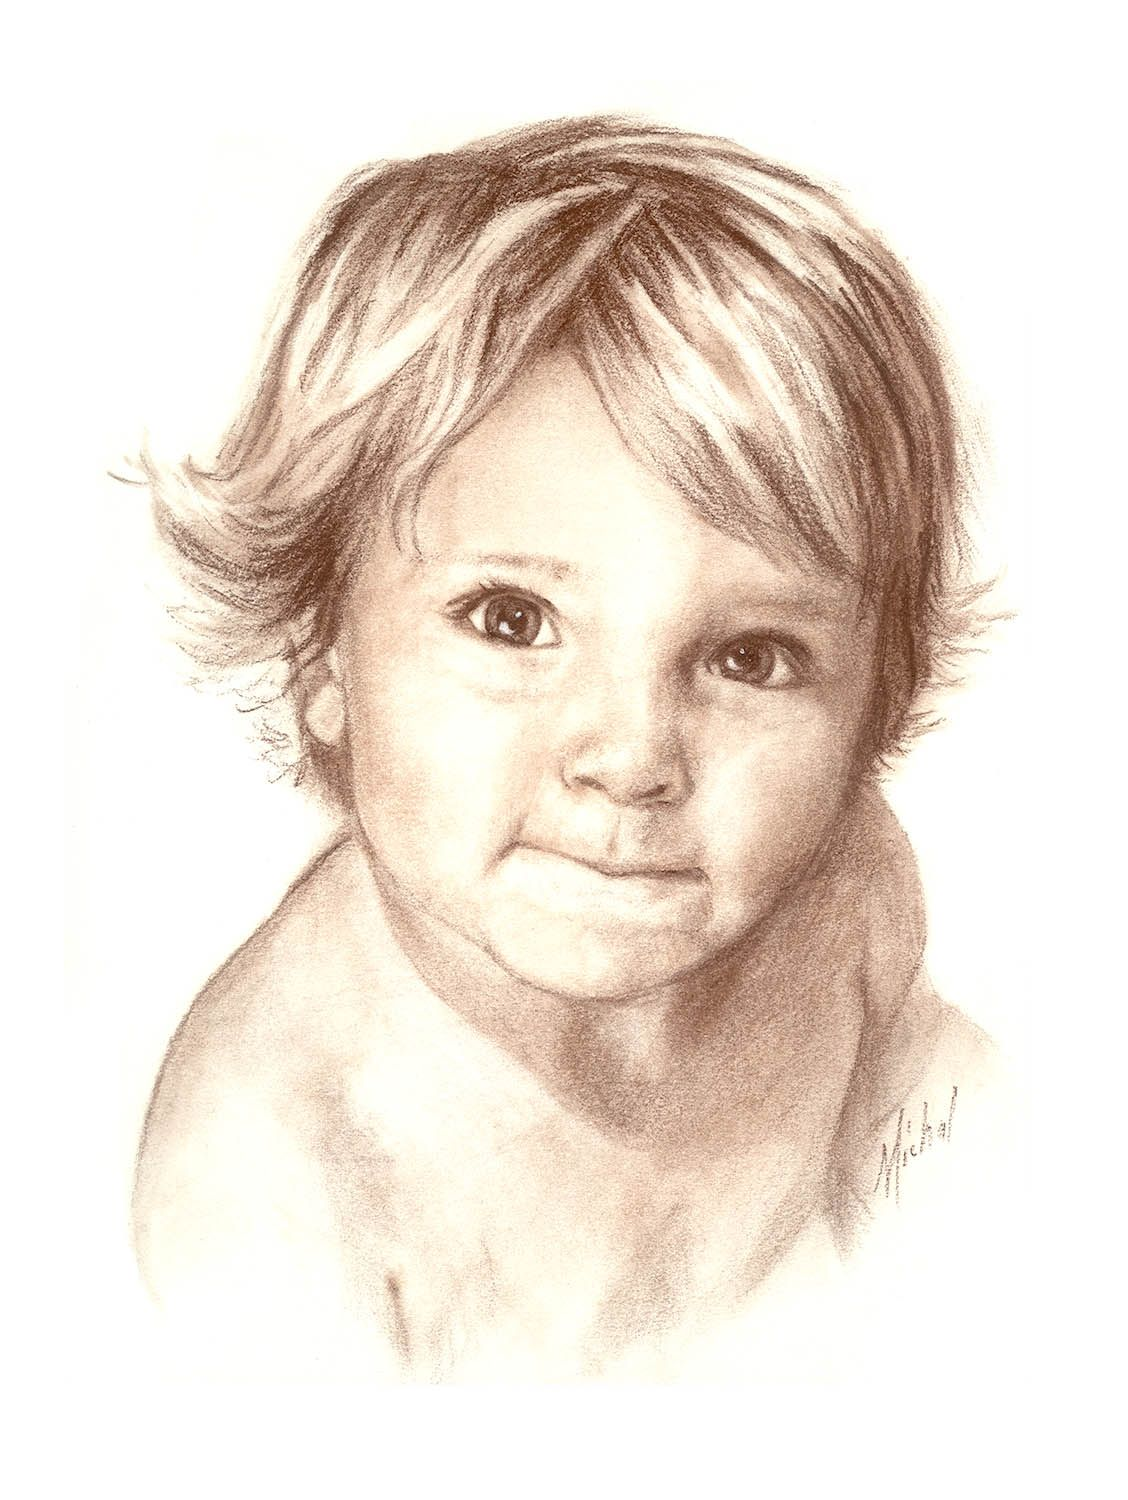 Commissioned by a client drawn from a photograph conte pencil on